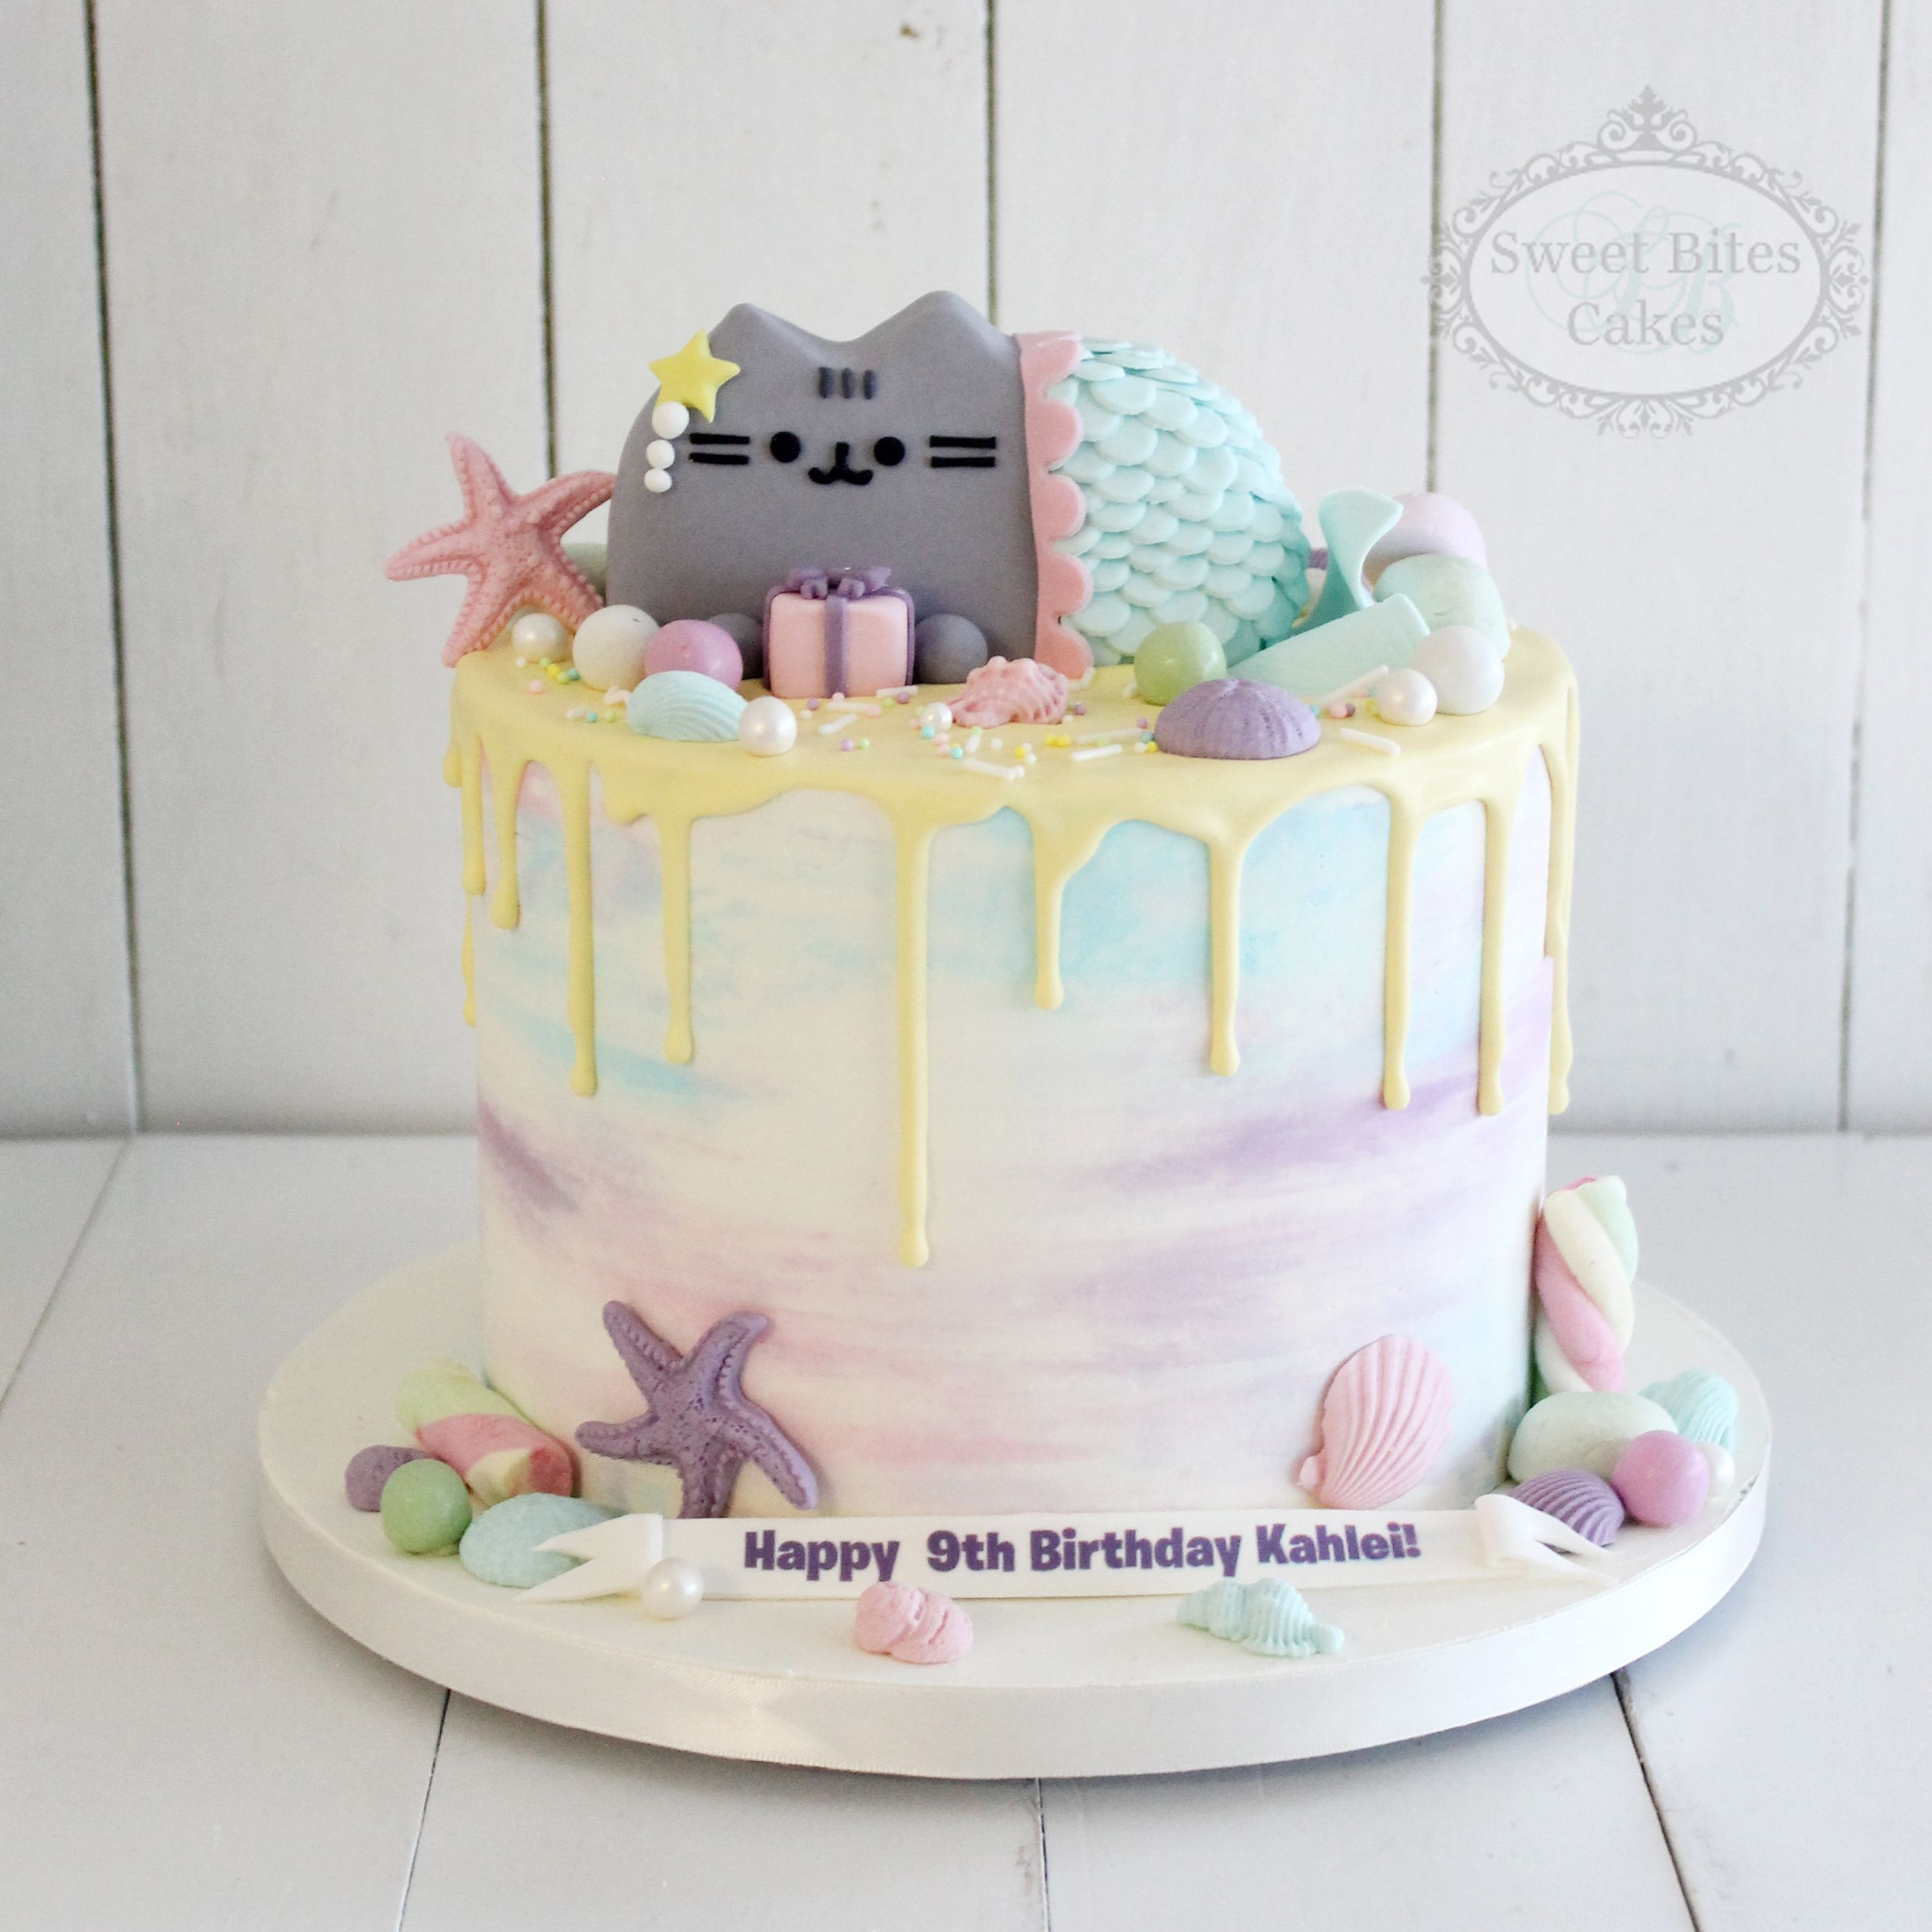 Pusheen Pastel Mermaid Cake Birthday Cake For Cat Cat Cake Pusheen Cakes